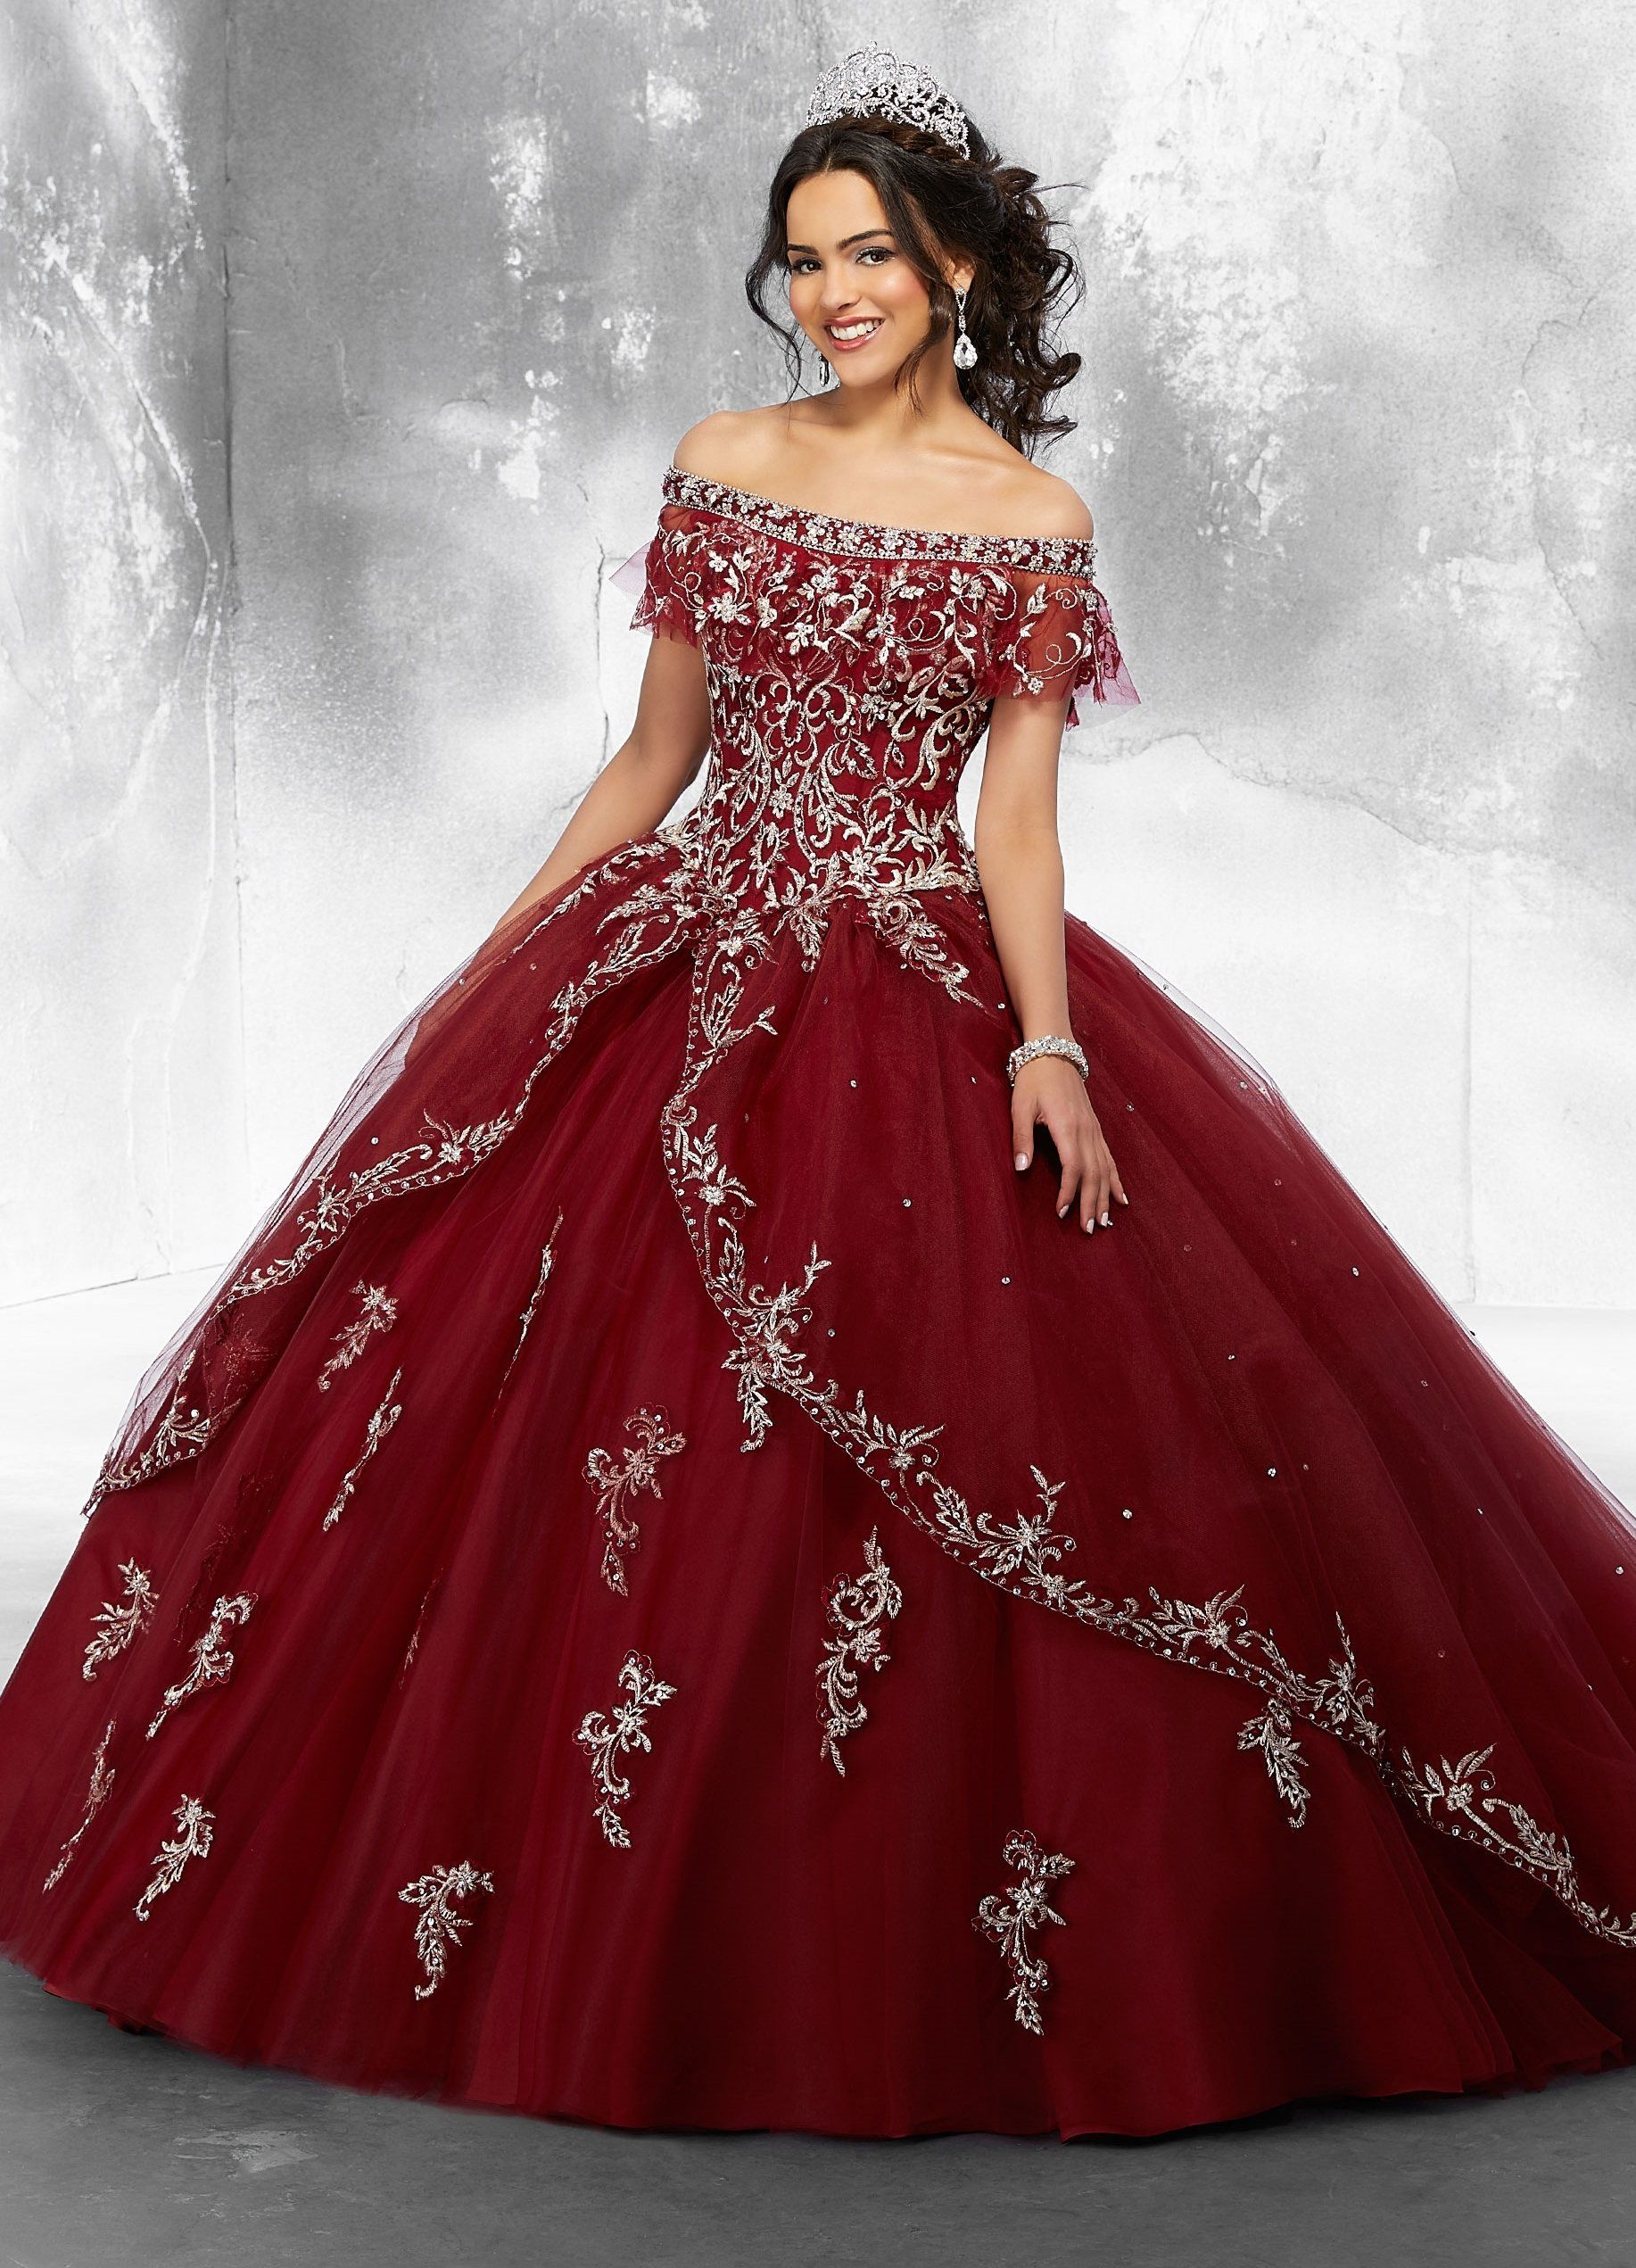 95b79e7ef262 Embroidered Off Shoulder Quinceanera Dress by Mori Lee Vizcaya 89181